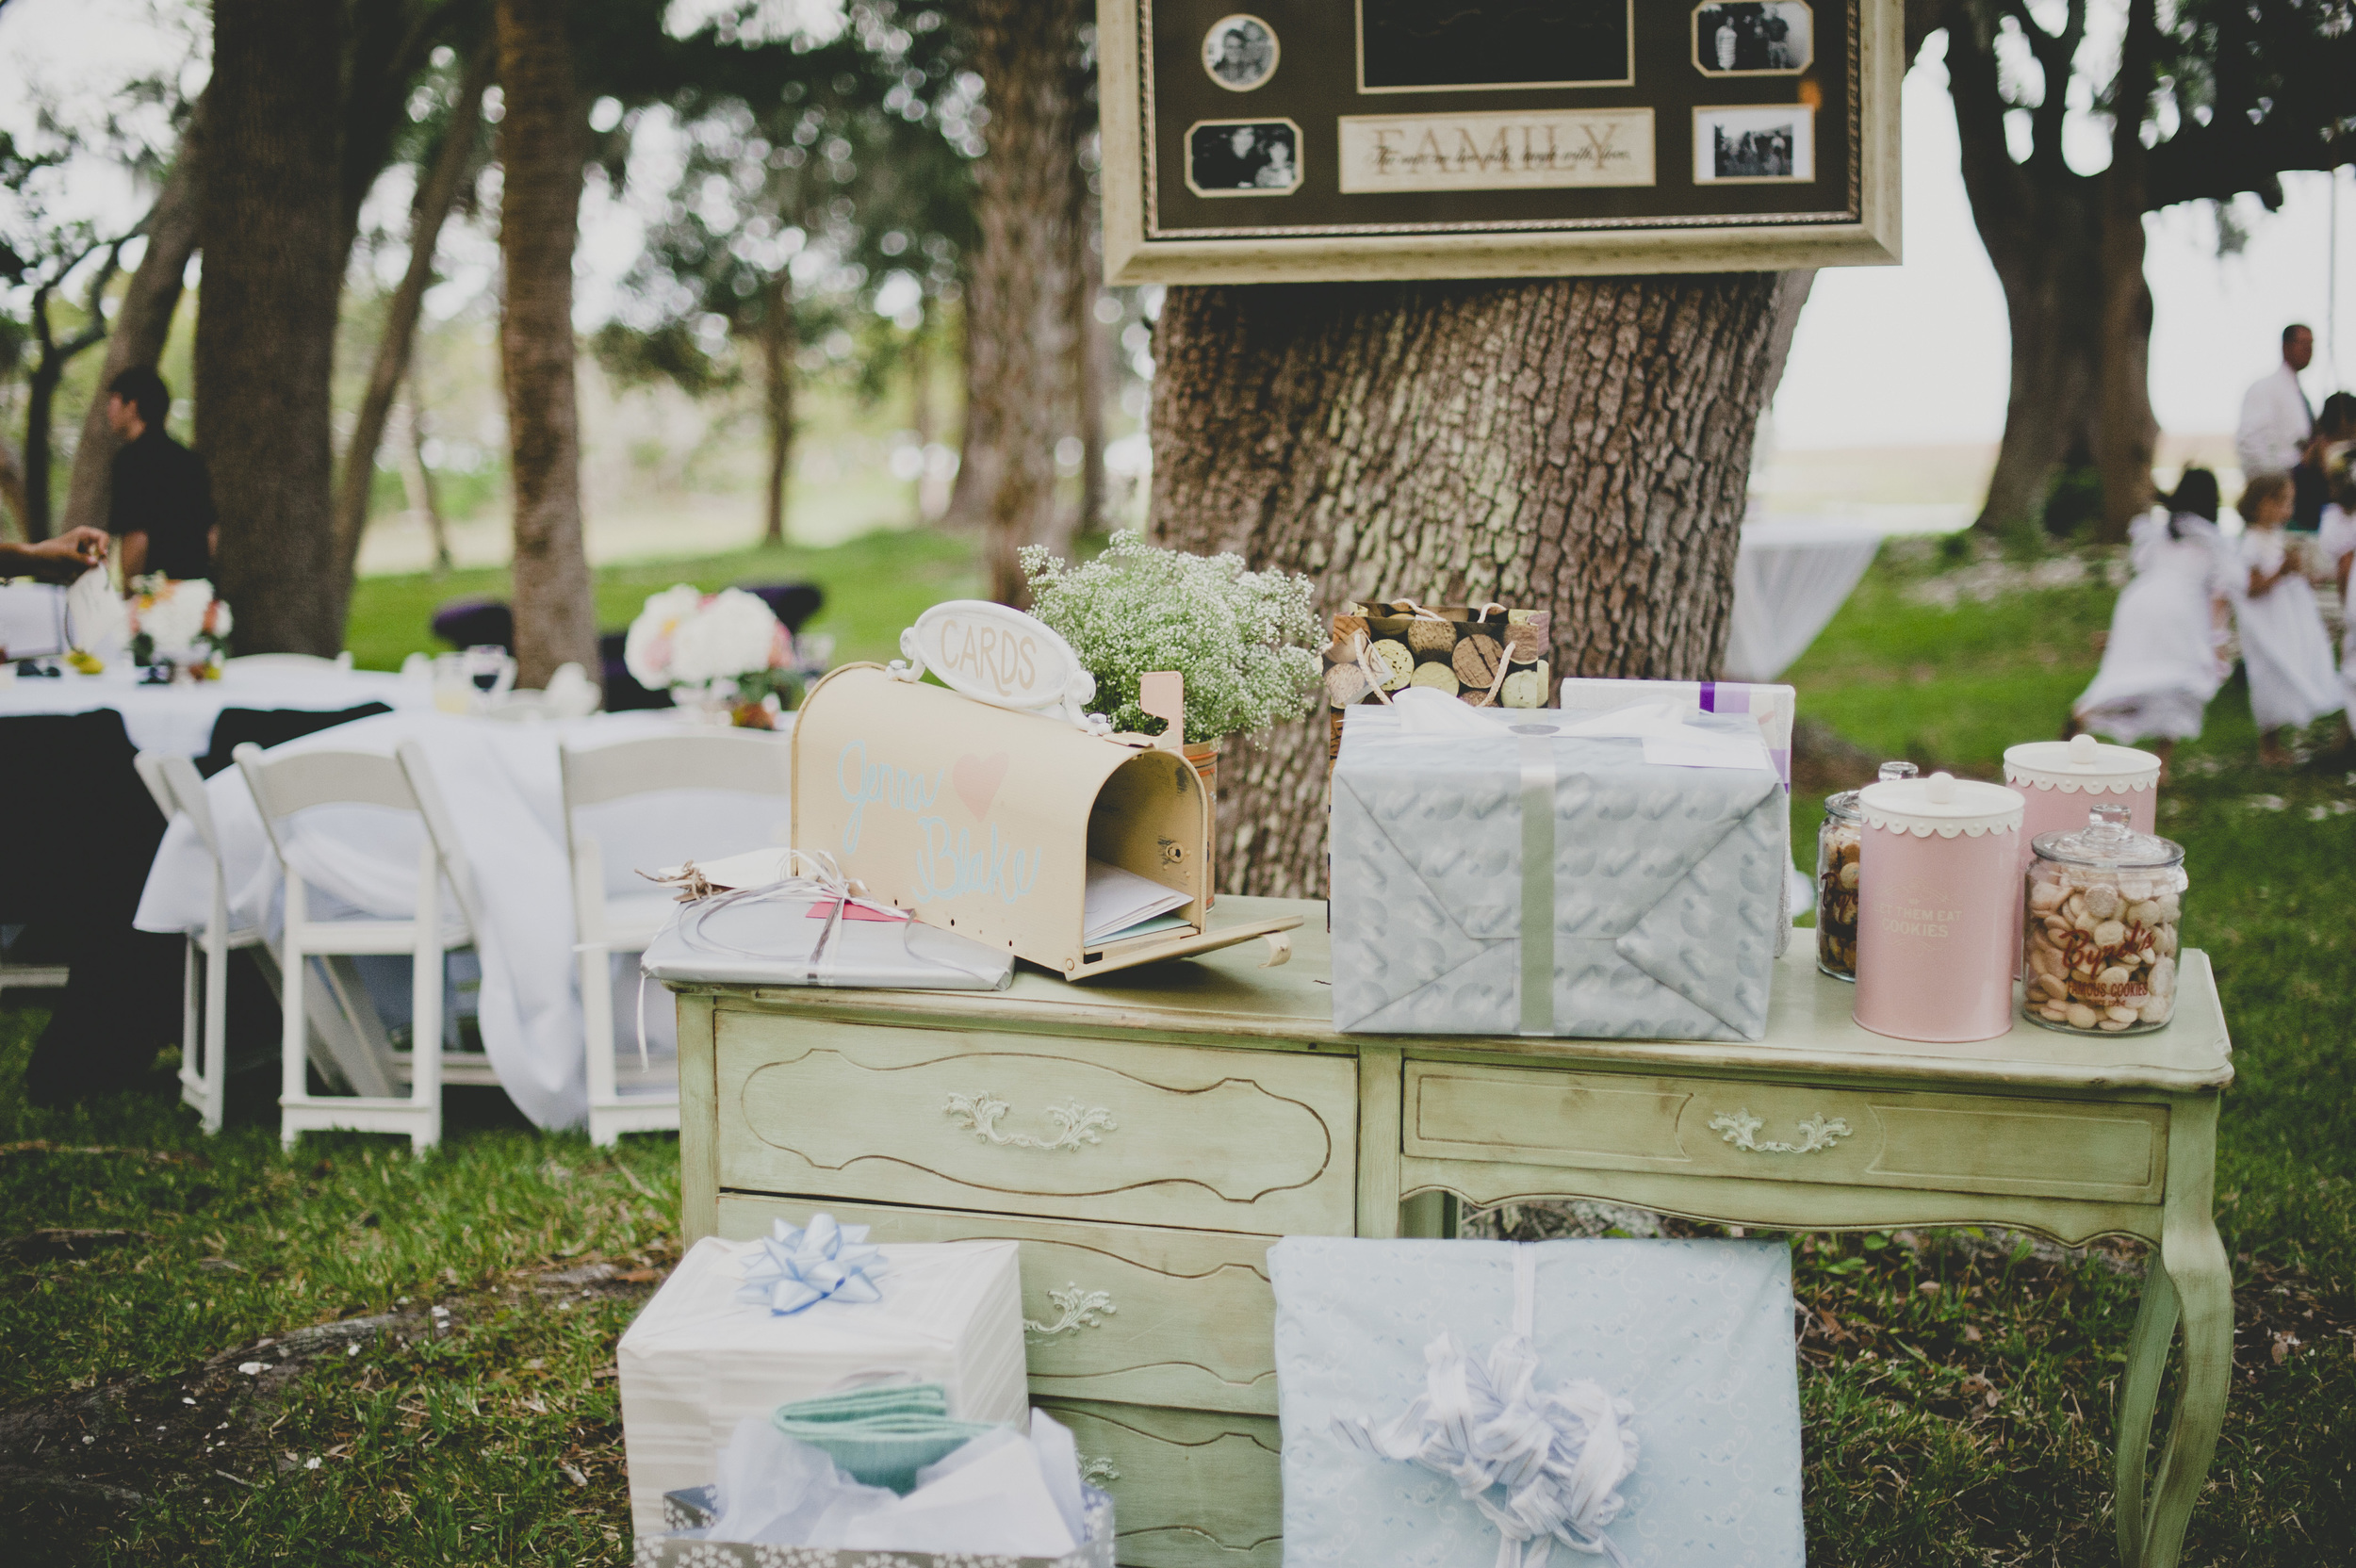 Jenna blakes savannah wedding a lowcountry wedding blog are you planning a savannah wedding check out our list of preferred vendors and venues oh and if you need help securing guest rooms for your wedding nvjuhfo Images